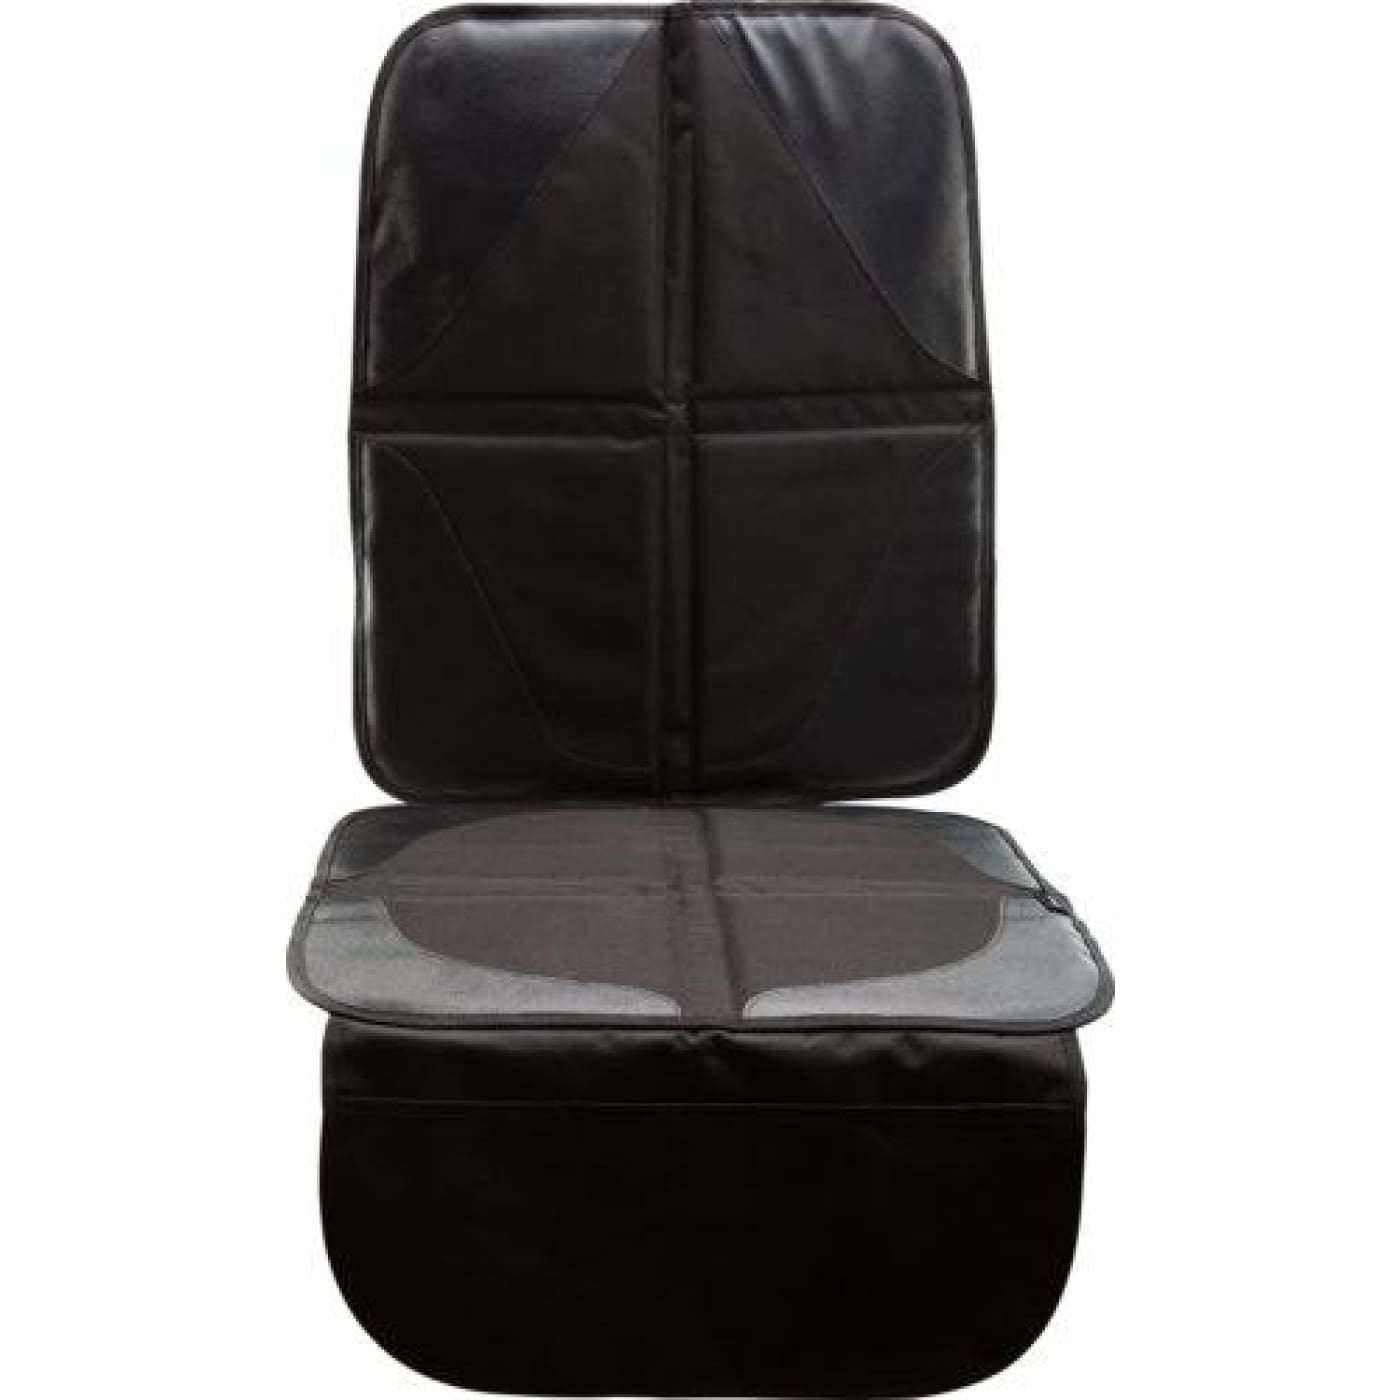 InfaSecure Deluxe Seat Protector - CAR SEATS - SEAT PROTECTORS/MIRRORS/STORAGE